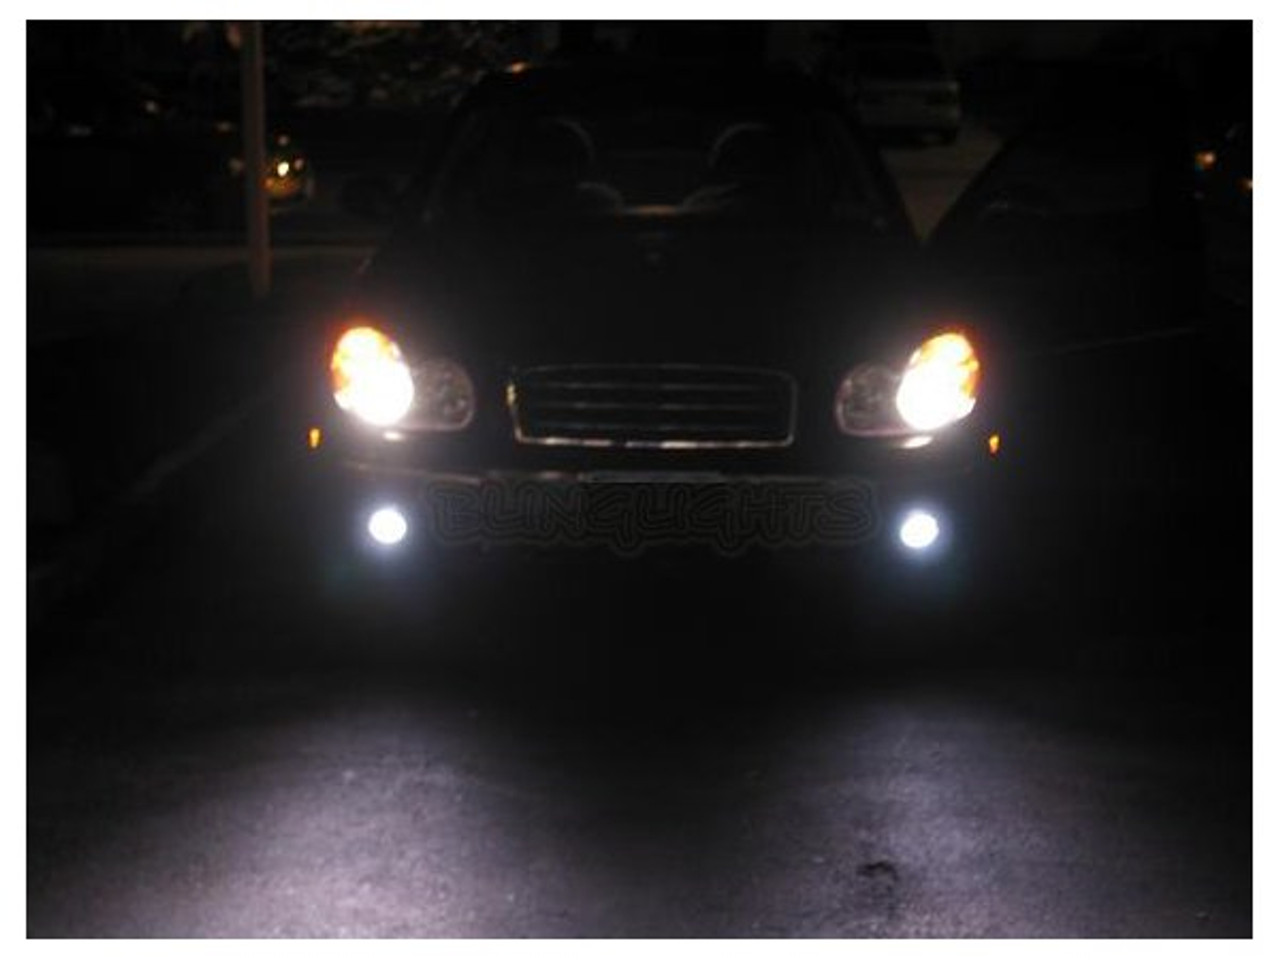 SCITOO 8Pcs White Interior LED Light Package Kit Replacement Bulbs Fits for 2002-2005 Hyundai Sonata